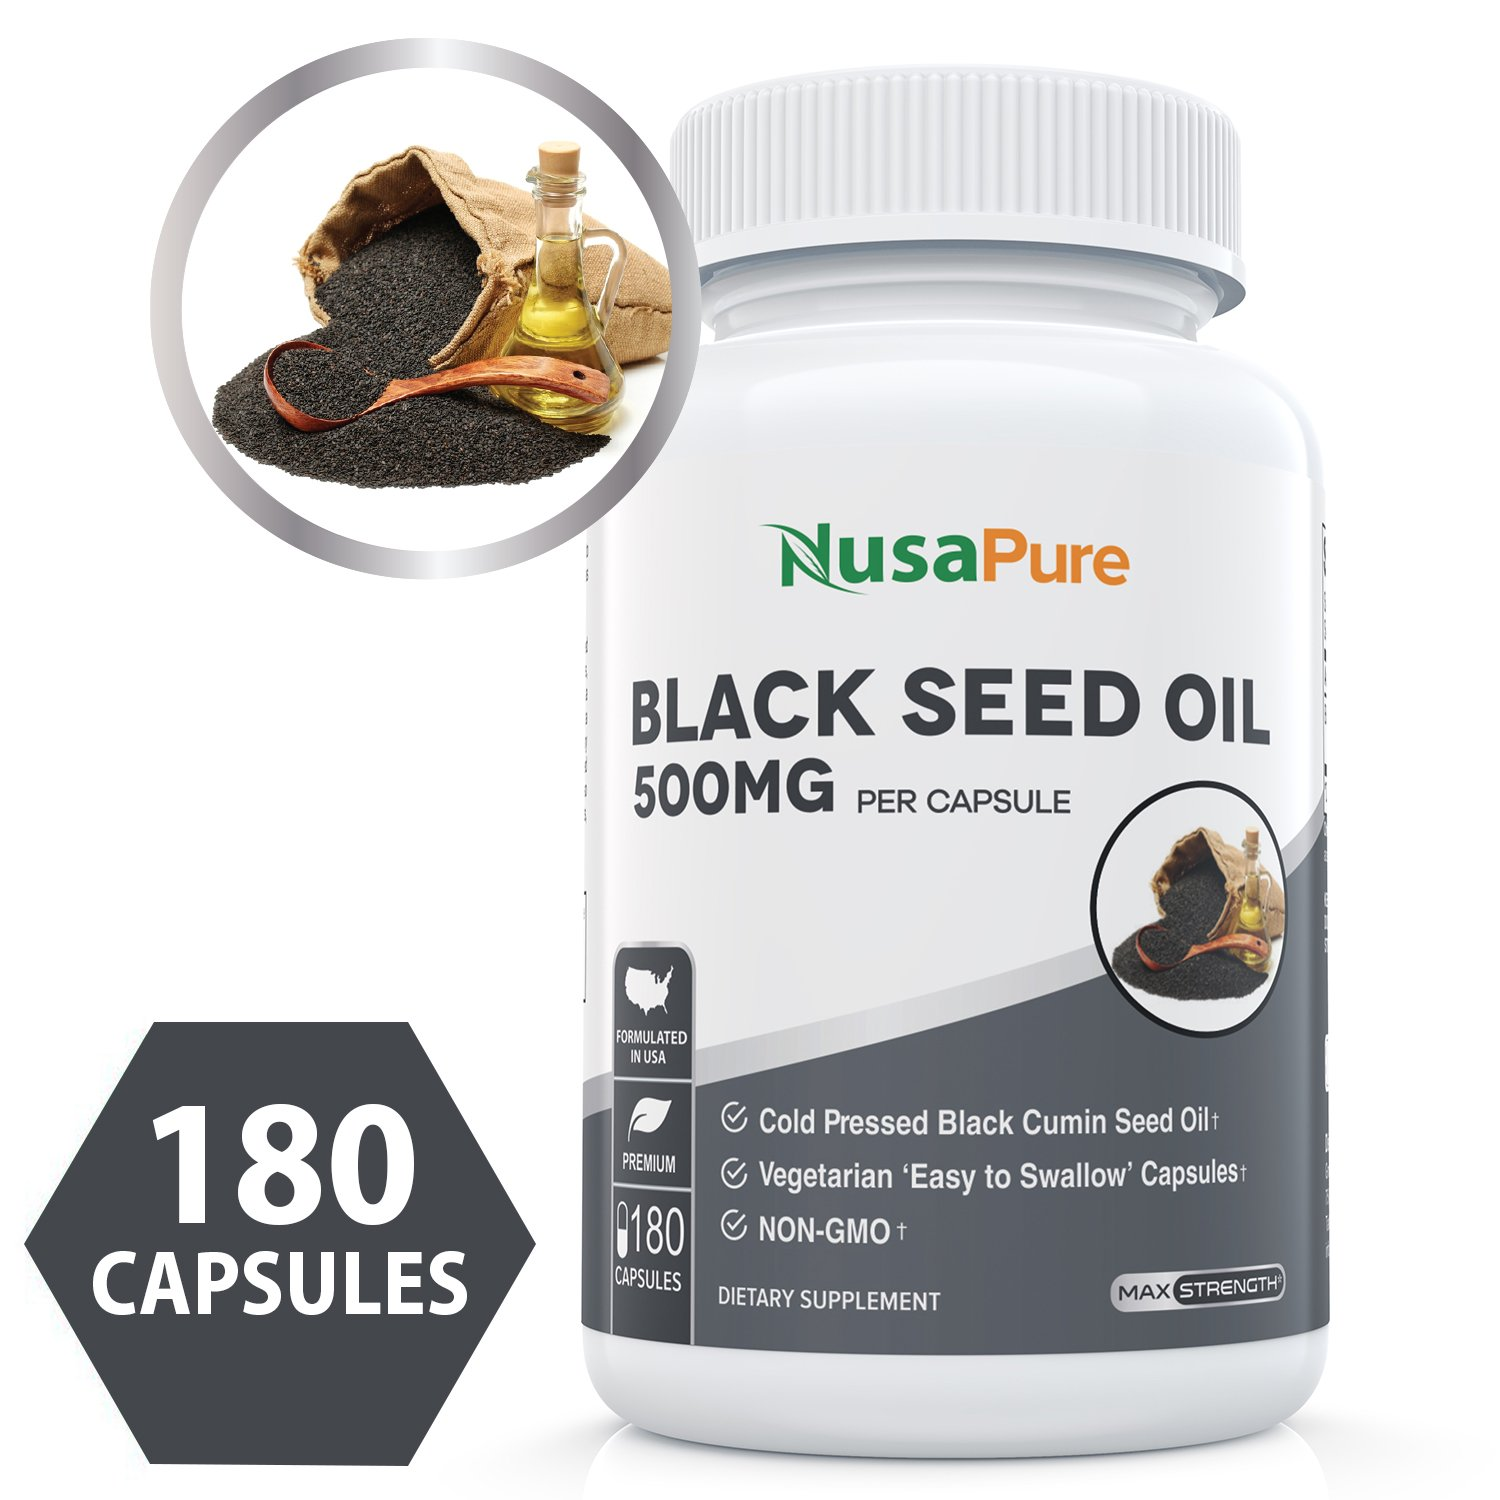 Best Black Seed Oil 180 Softgel Capsules (Non-GMO & Vegetarian) Premium Cold-Pressed Nigella Sativa Producing Pure Black Cumin Seed Oil with Vitamin E - Made in The USA - 100% Money Back Guarantee